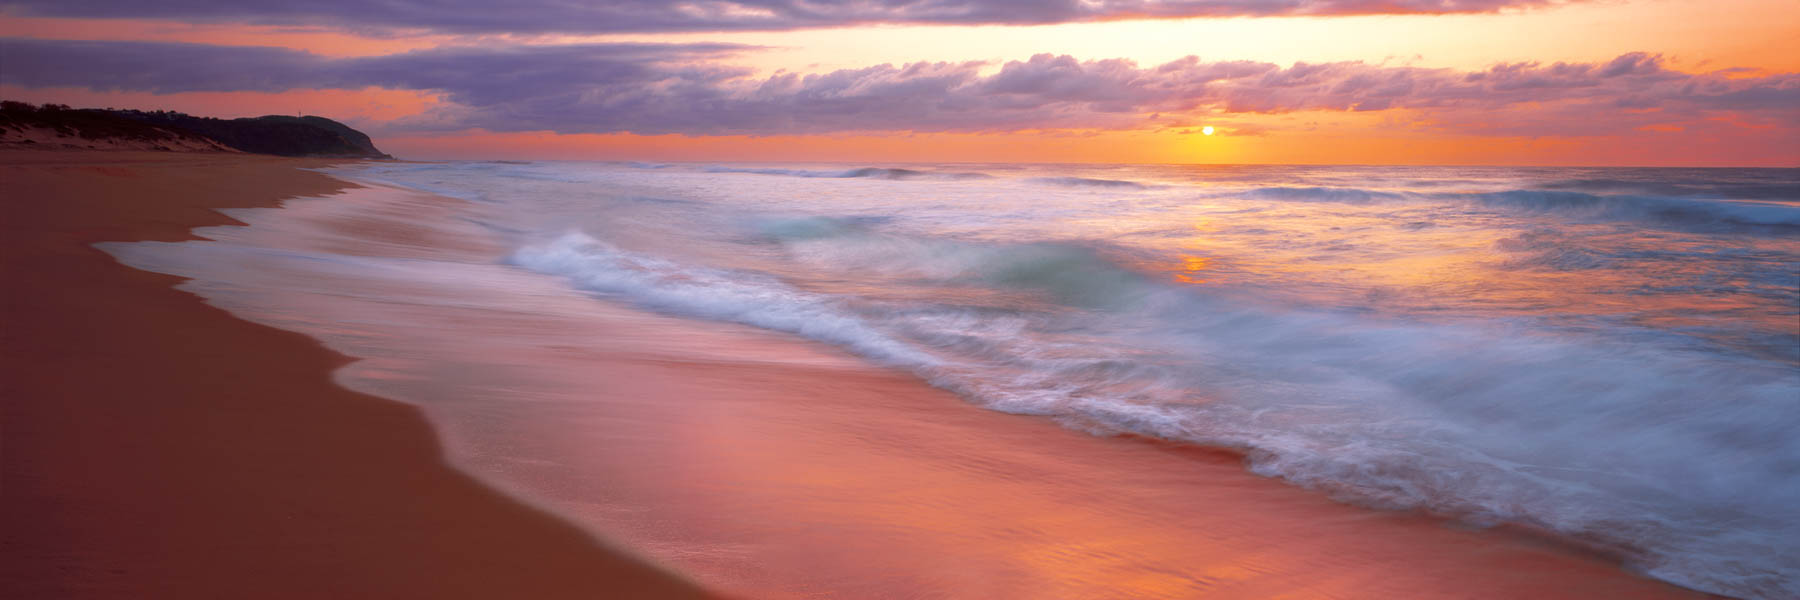 Dawning of a New Day, Wamberal